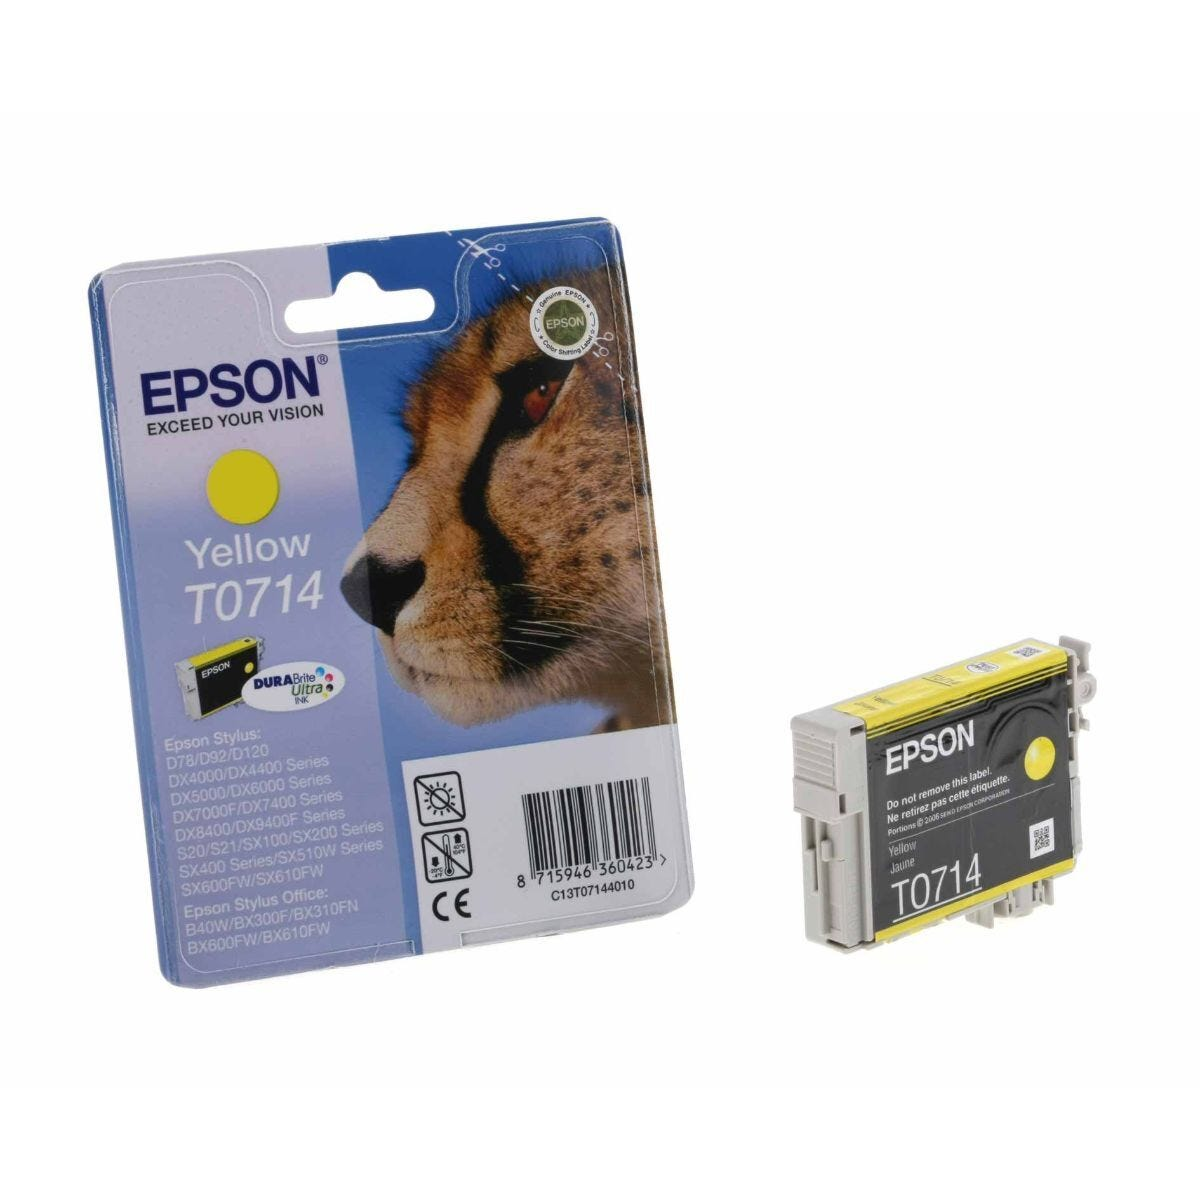 Epson T0714 Ink Cartridge 5.5ml